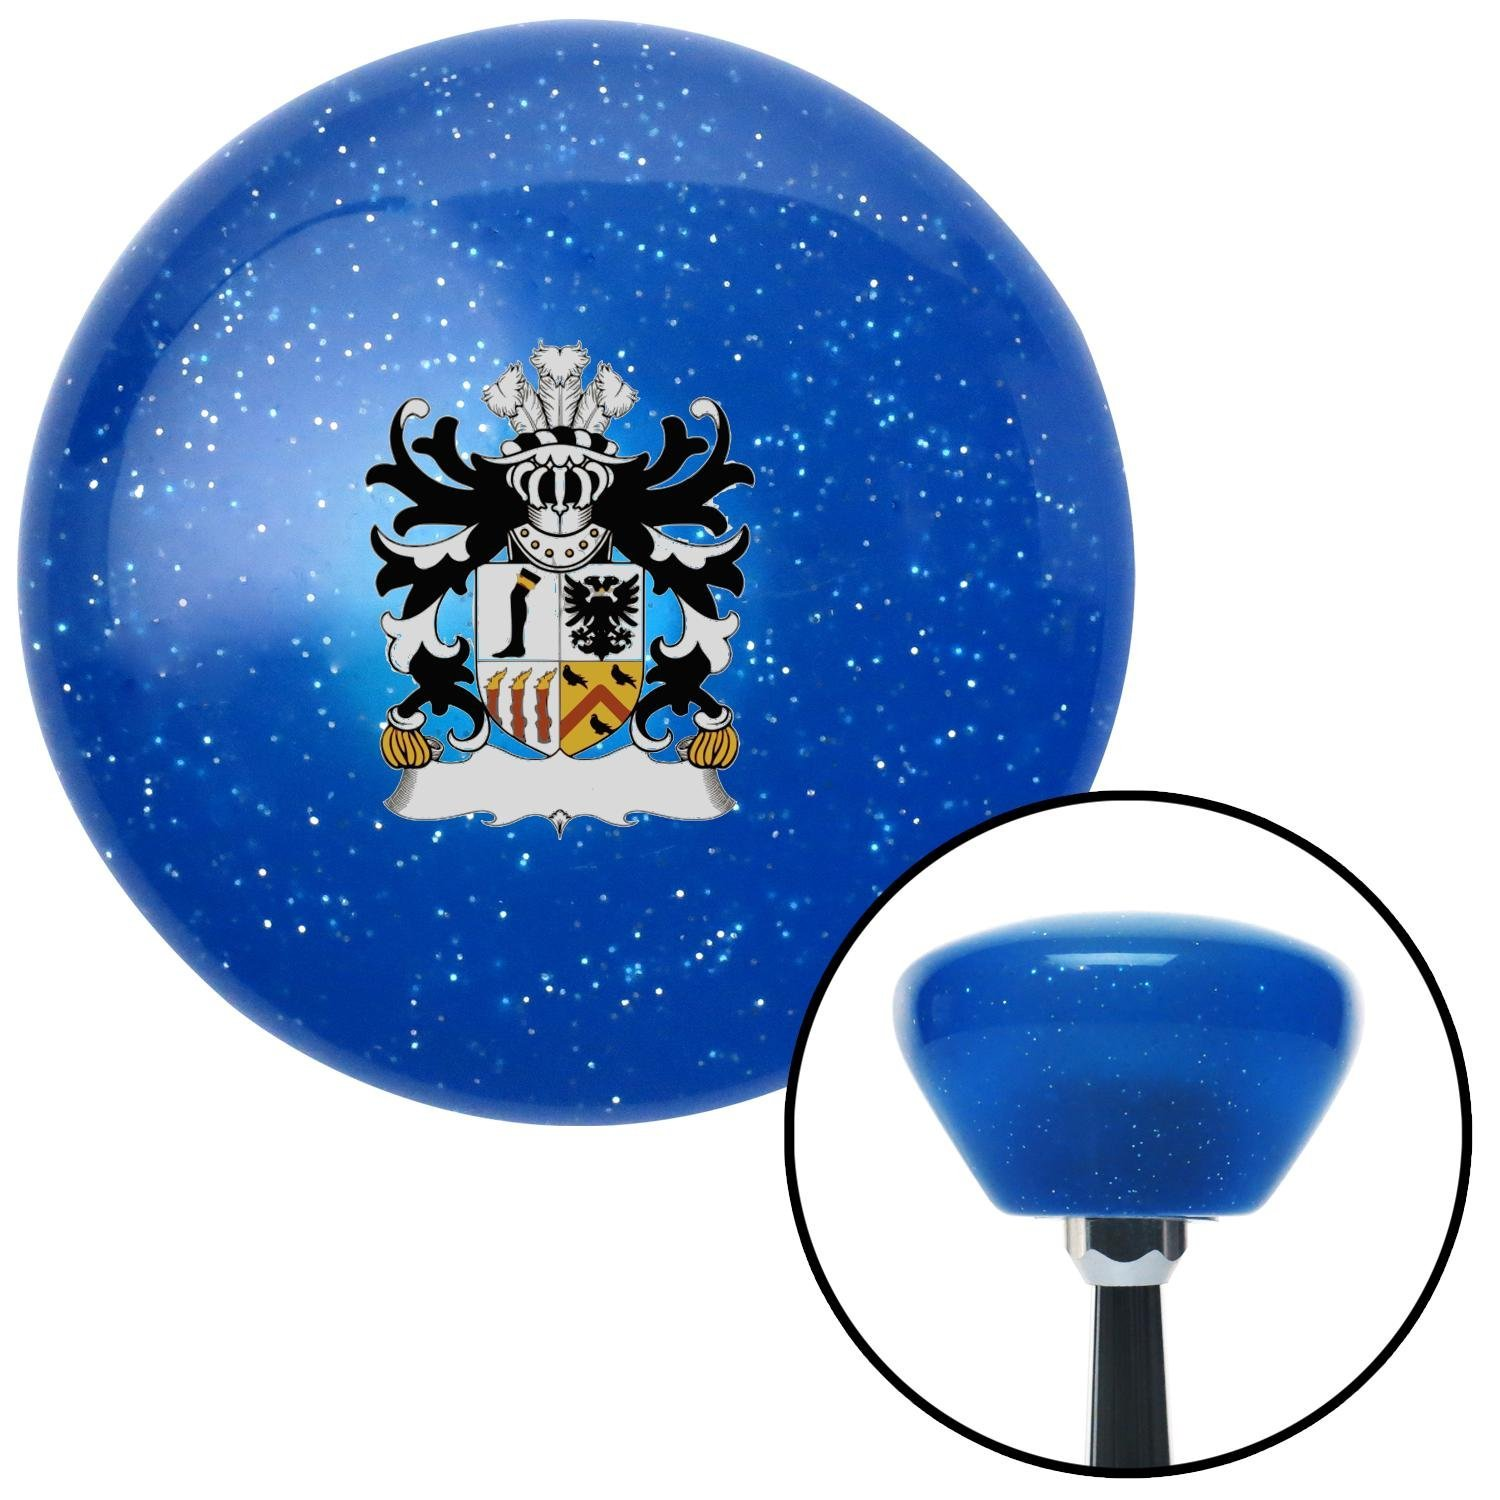 Roystonlodge Coat of Arms American Shifter 192516 Blue Retro Metal Flake Shift Knob with M16 x 1.5 Insert